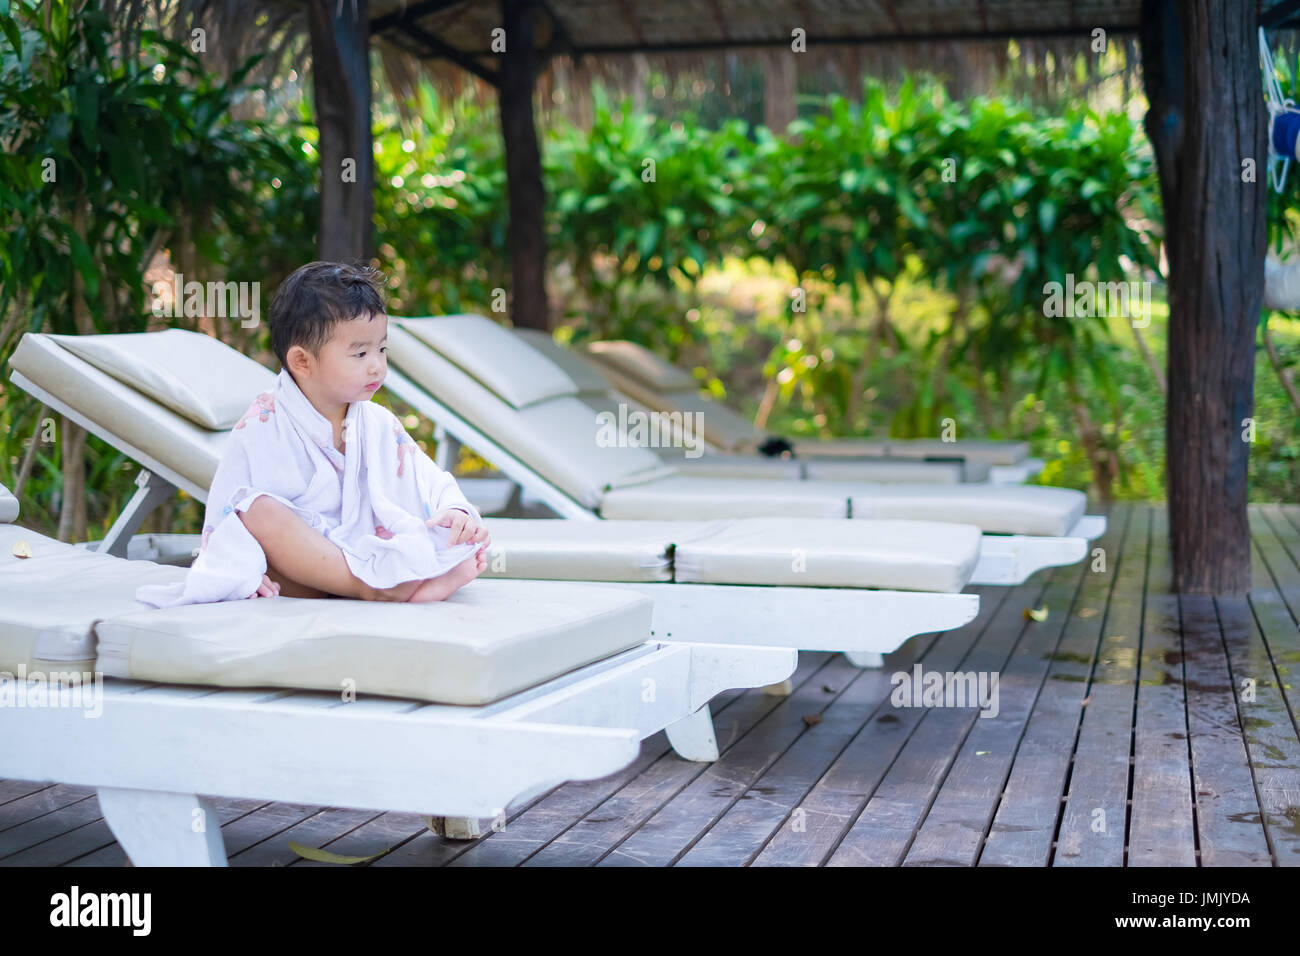 White Sun Lounge Asian Boy With White Towel Resting On A Lounge Deck Chair Or Sun